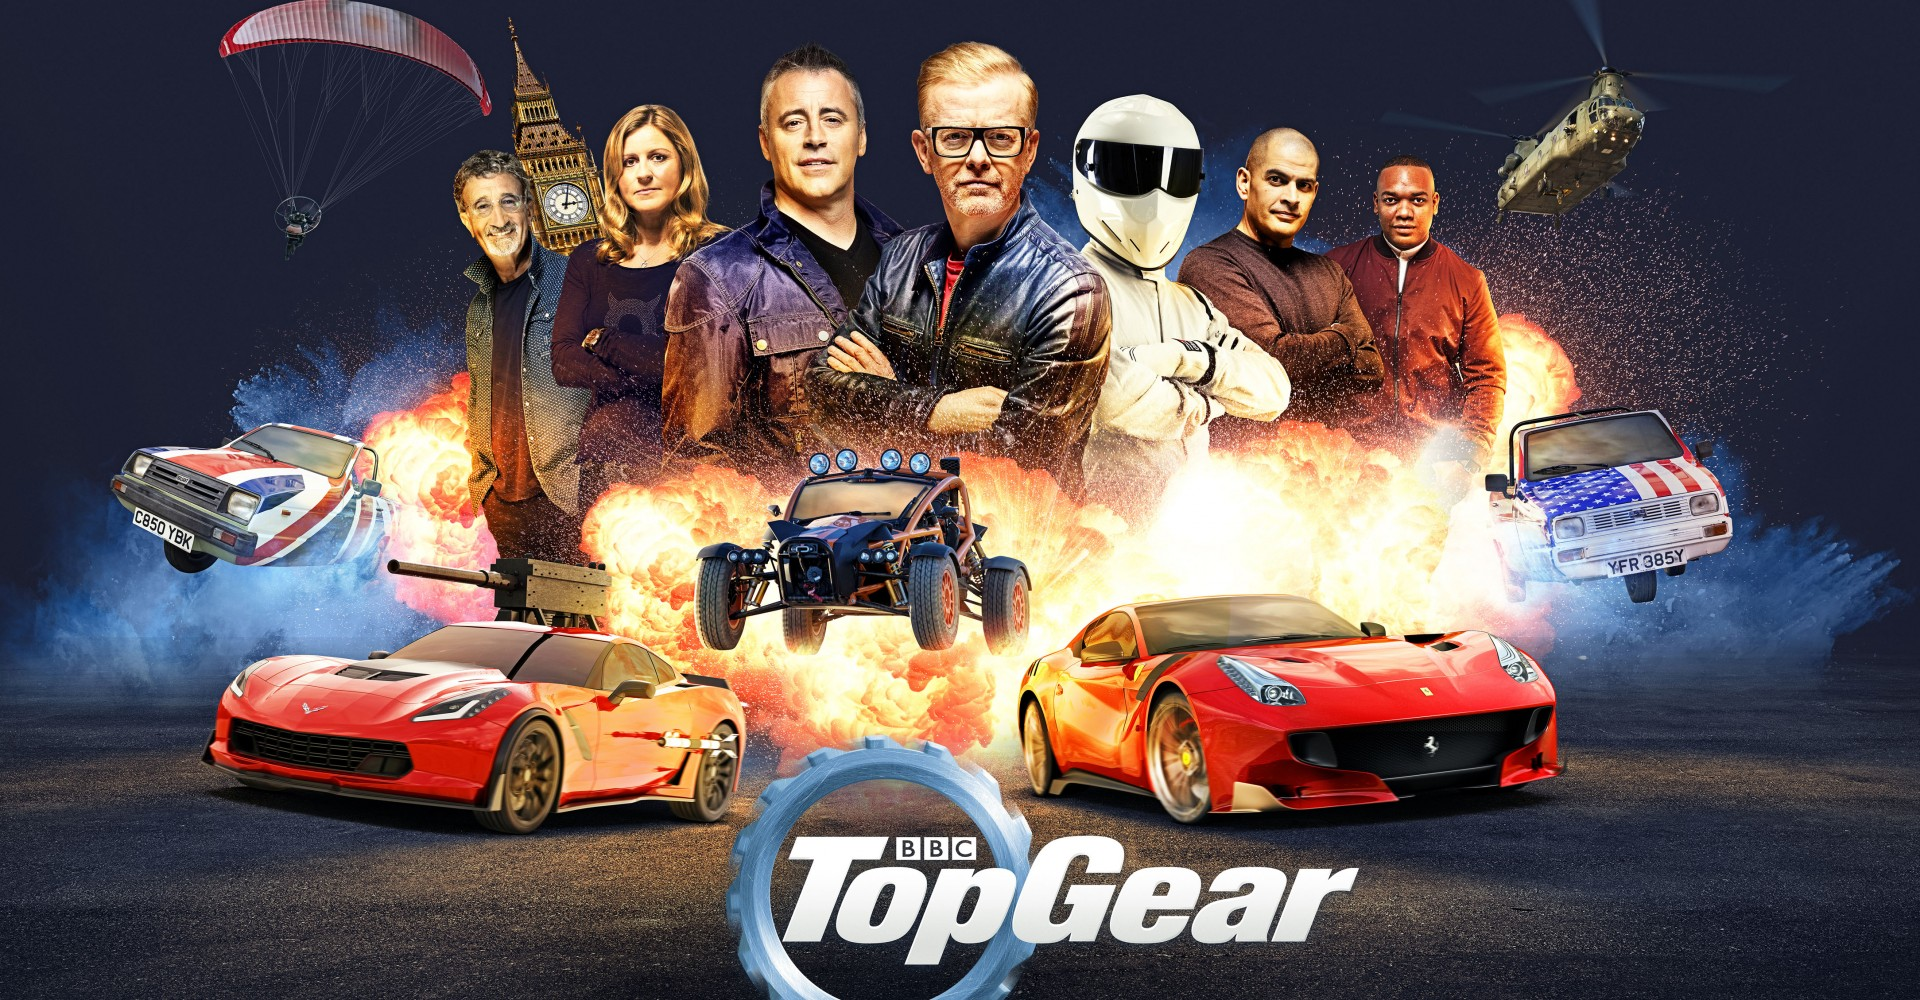 A Date And A Time For Our Diaries As Top Gear's Transmission Details Are Announced